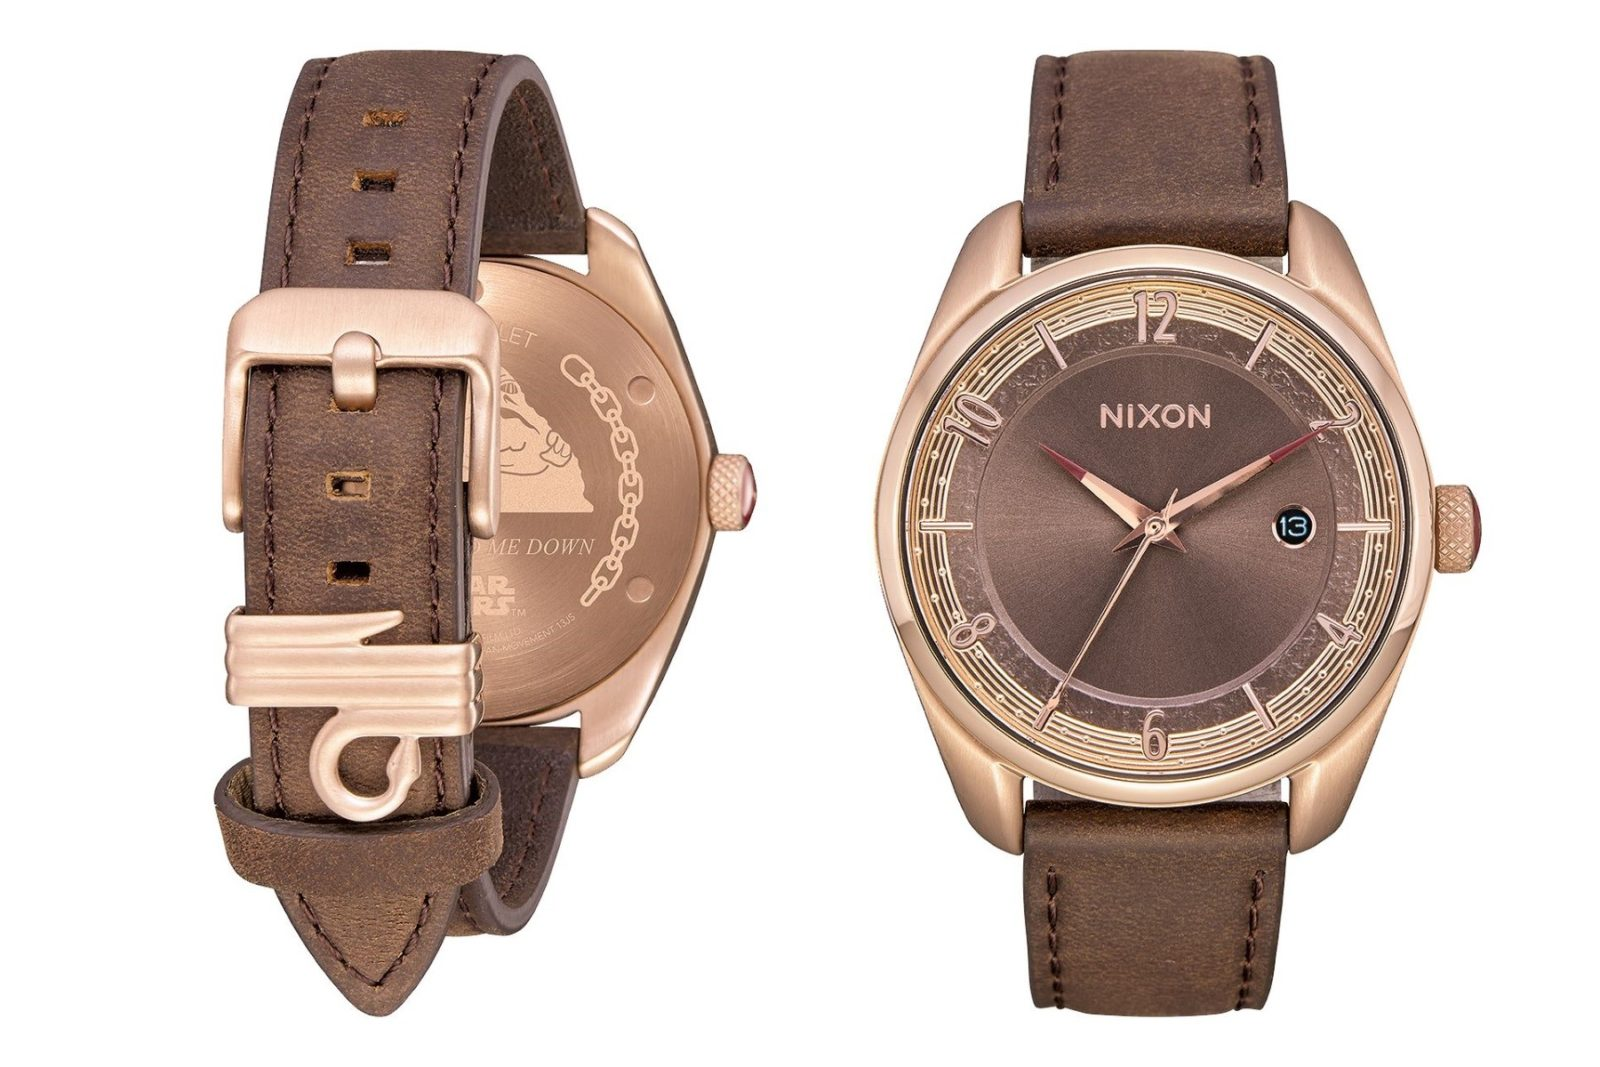 Nixon x Star Wars Princess Leia watch